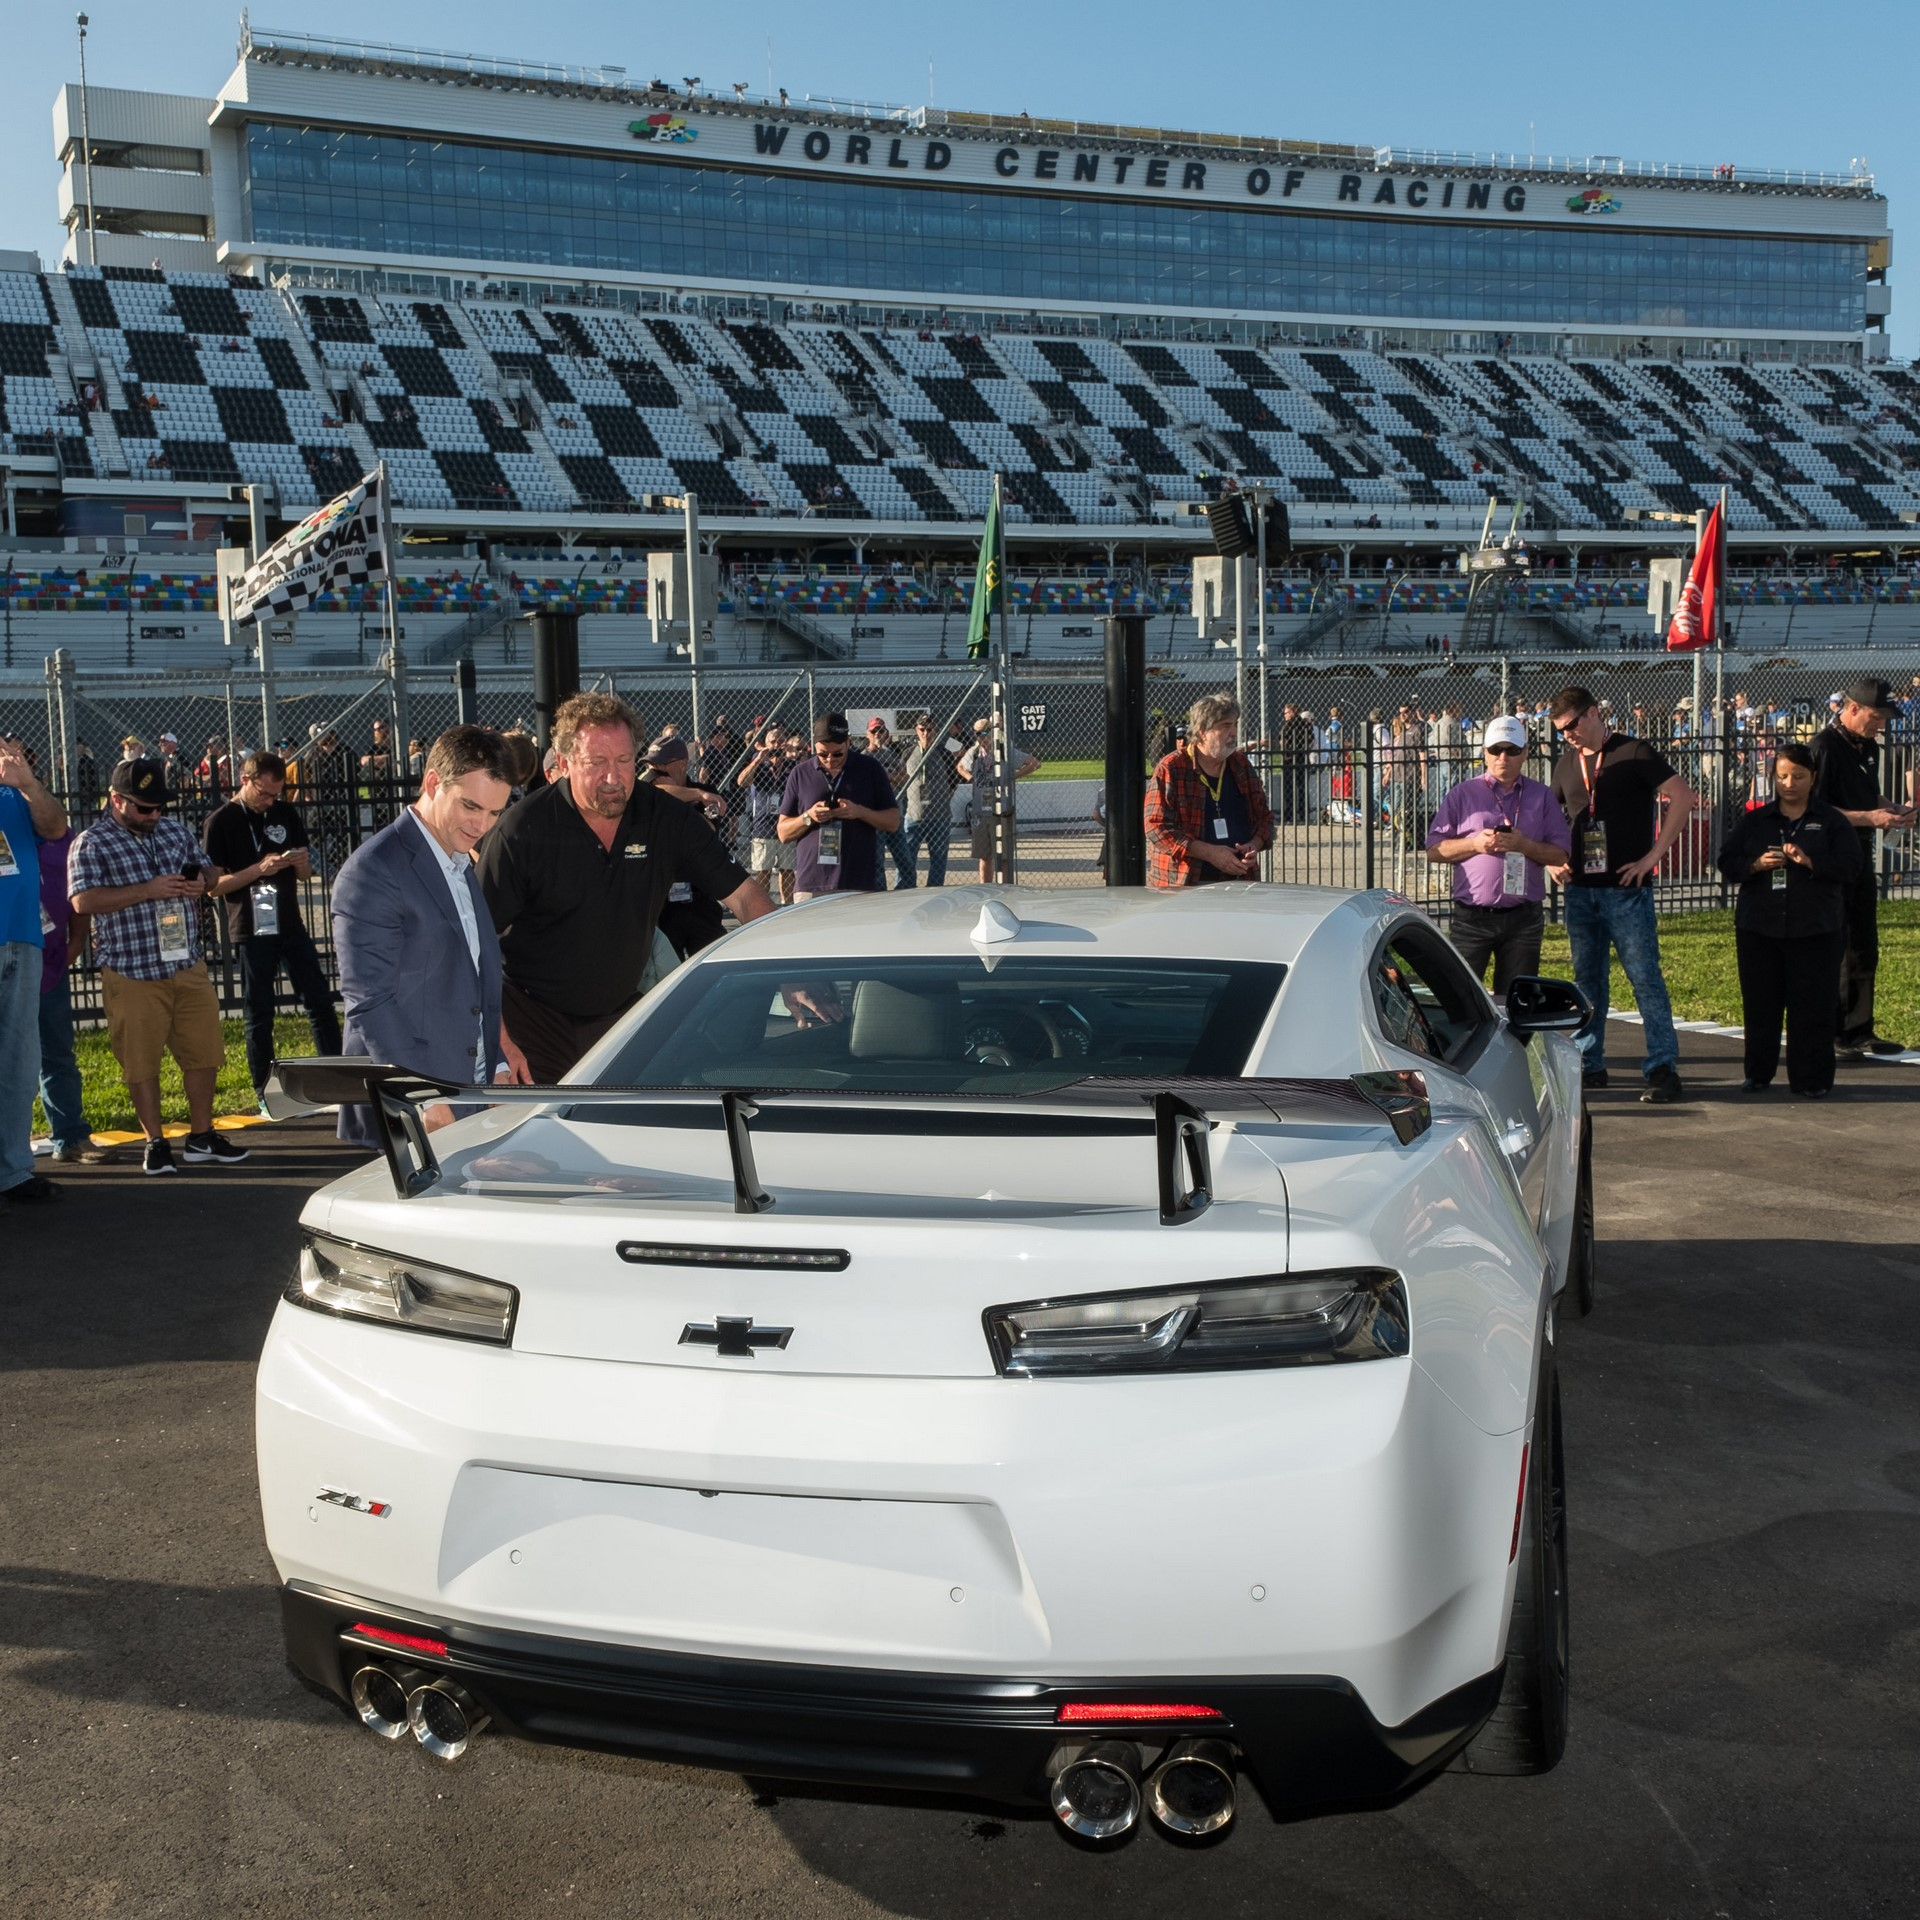 Chevy Unveils 2018 Camaro ZL1 1LE at Daytona